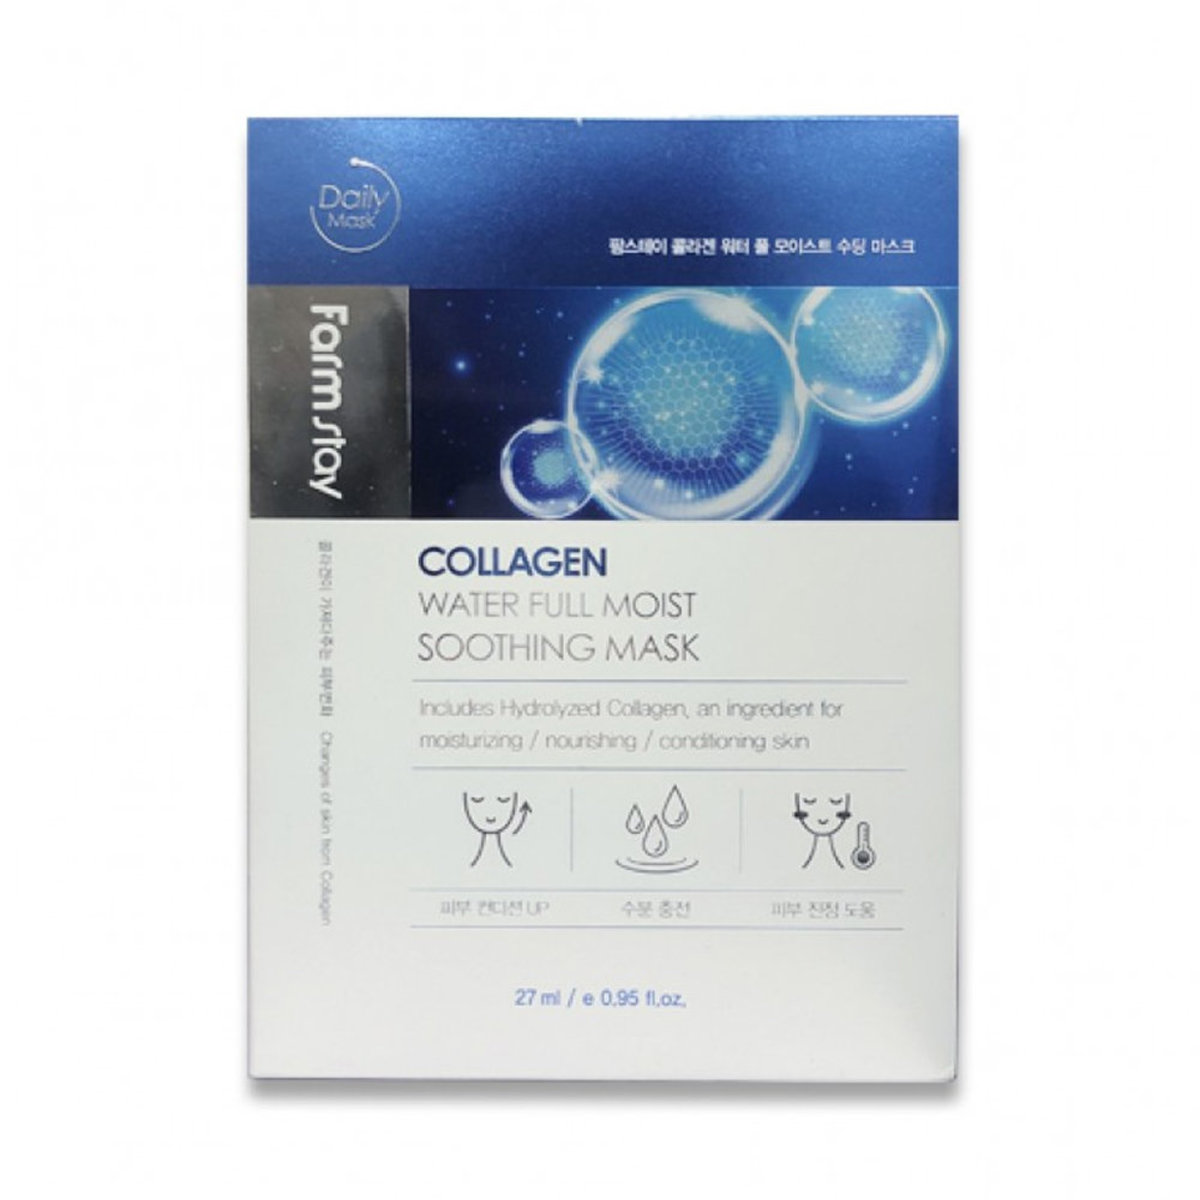 Collagen Water Full Moist Soothing Mask(10pcs/box)